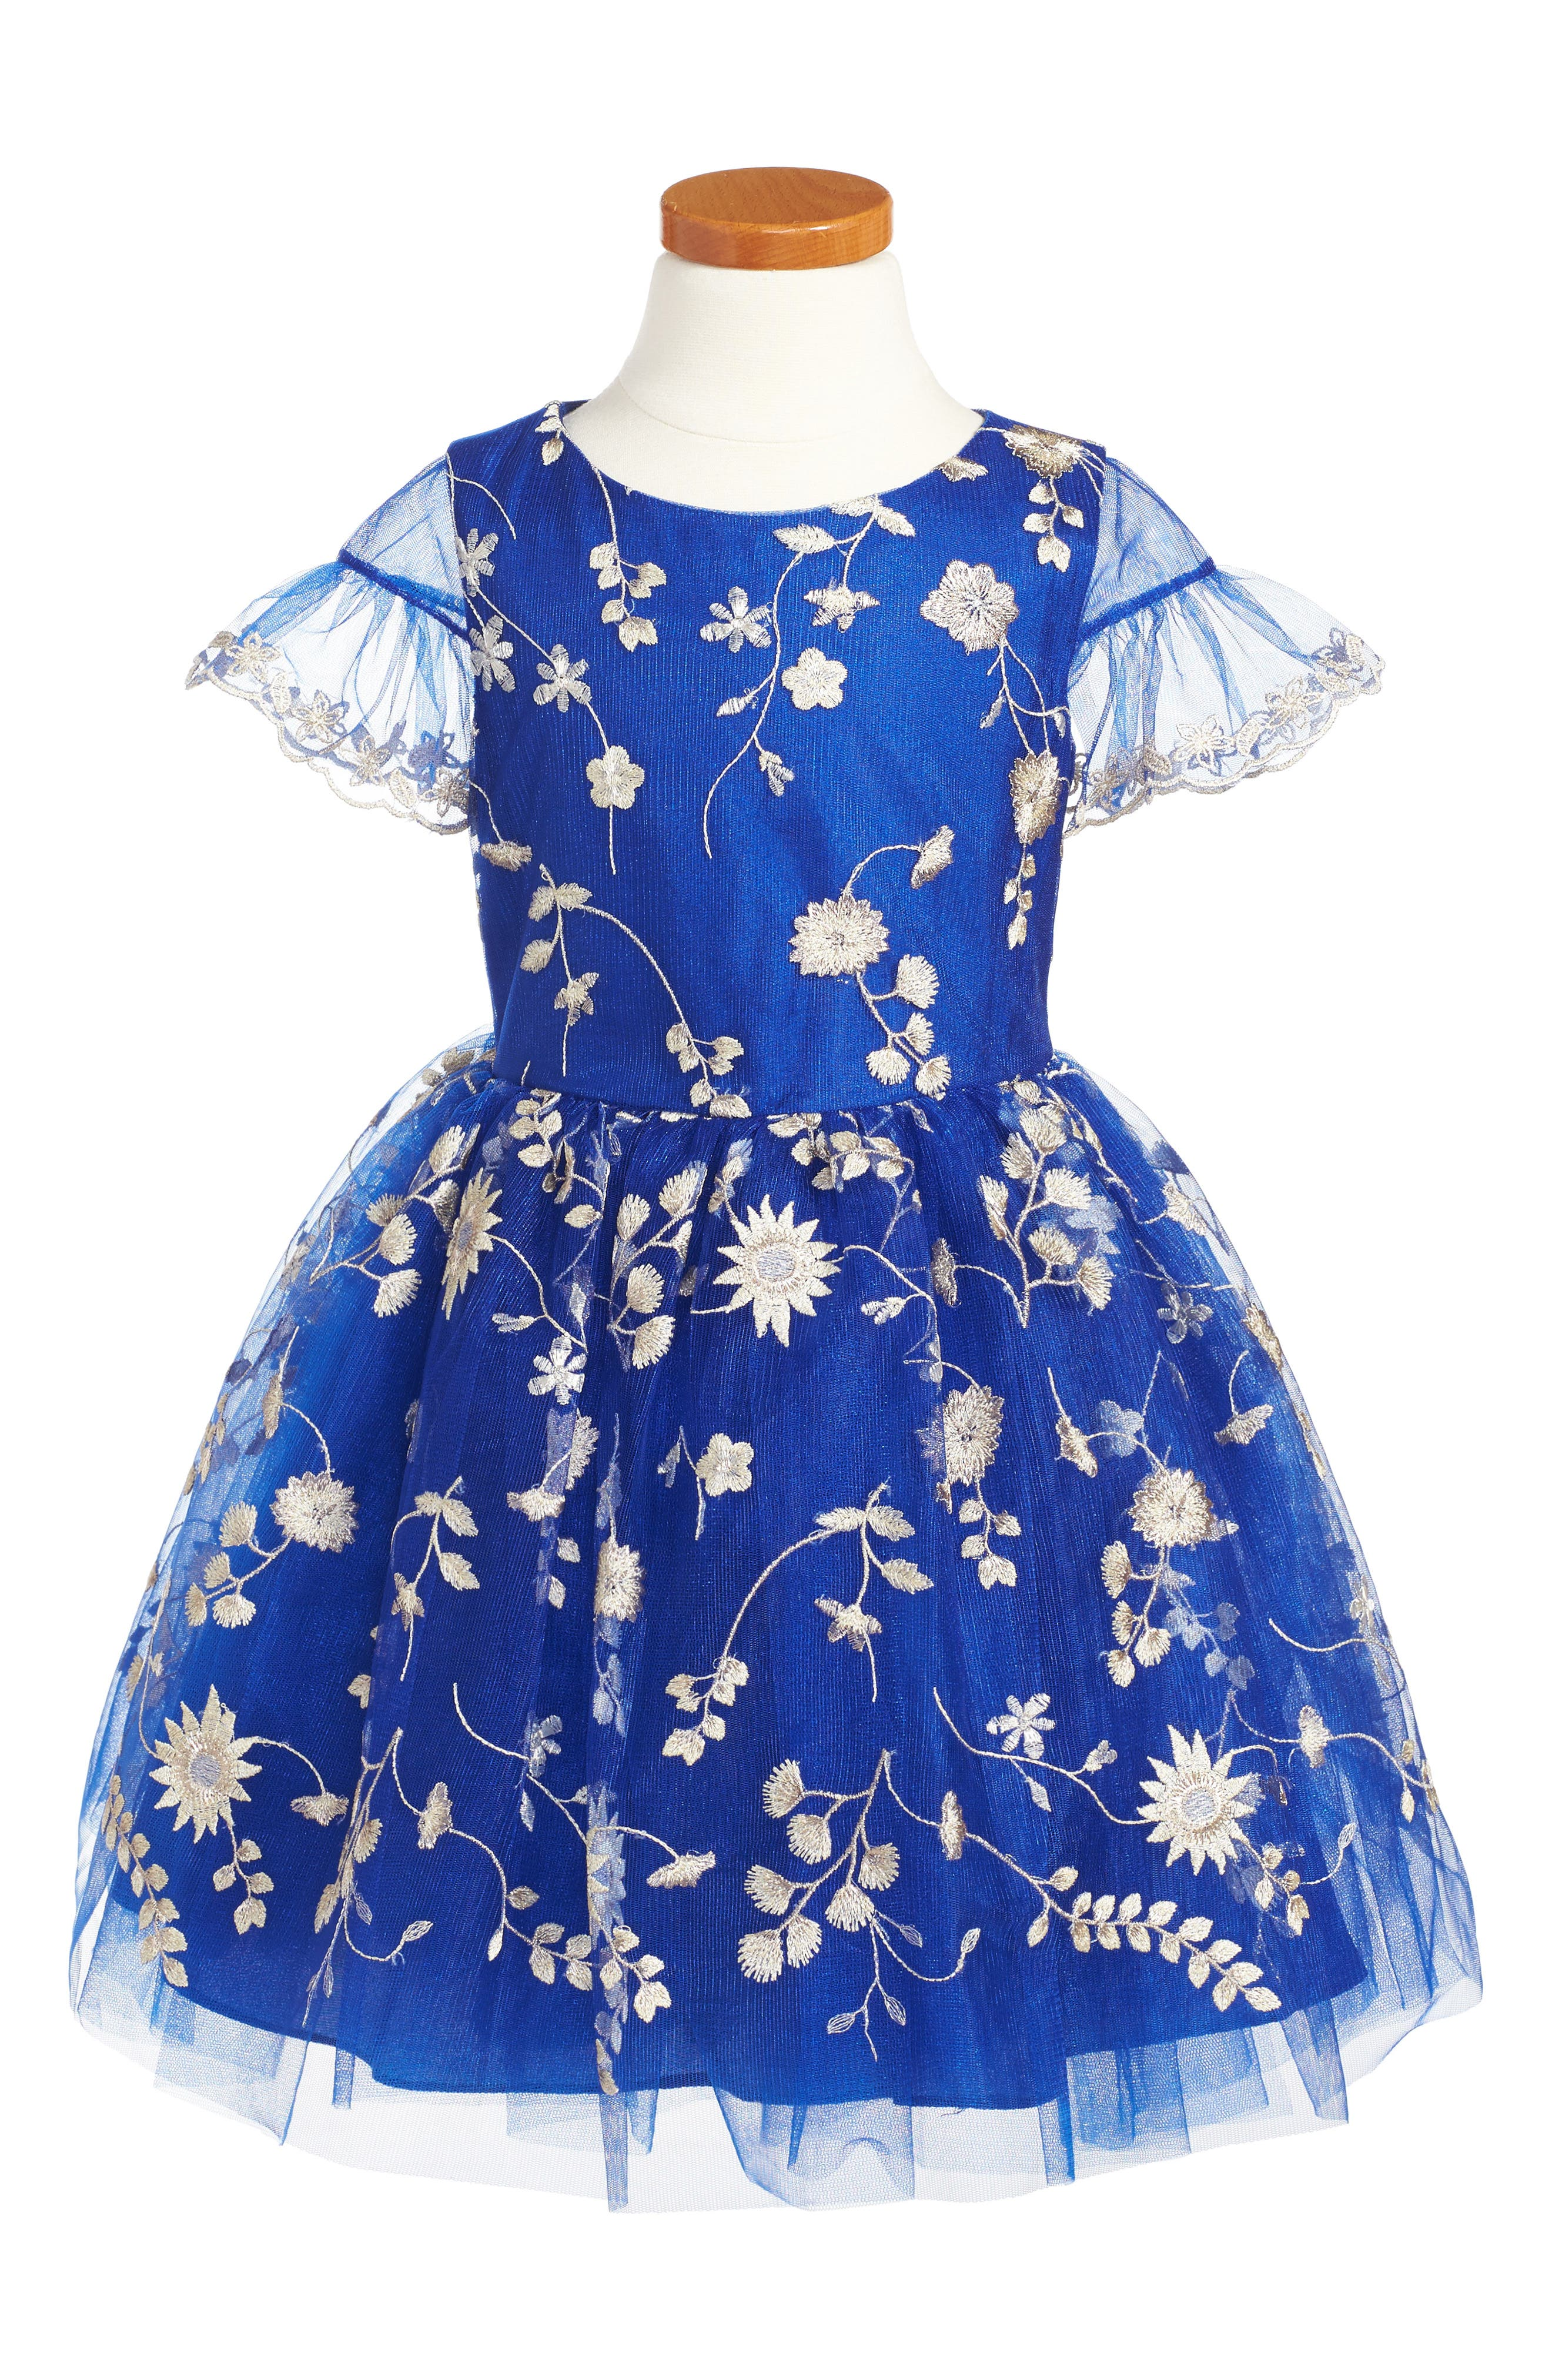 Floral Embroidery Dress,                         Main,                         color, Royal Blue/ Gold